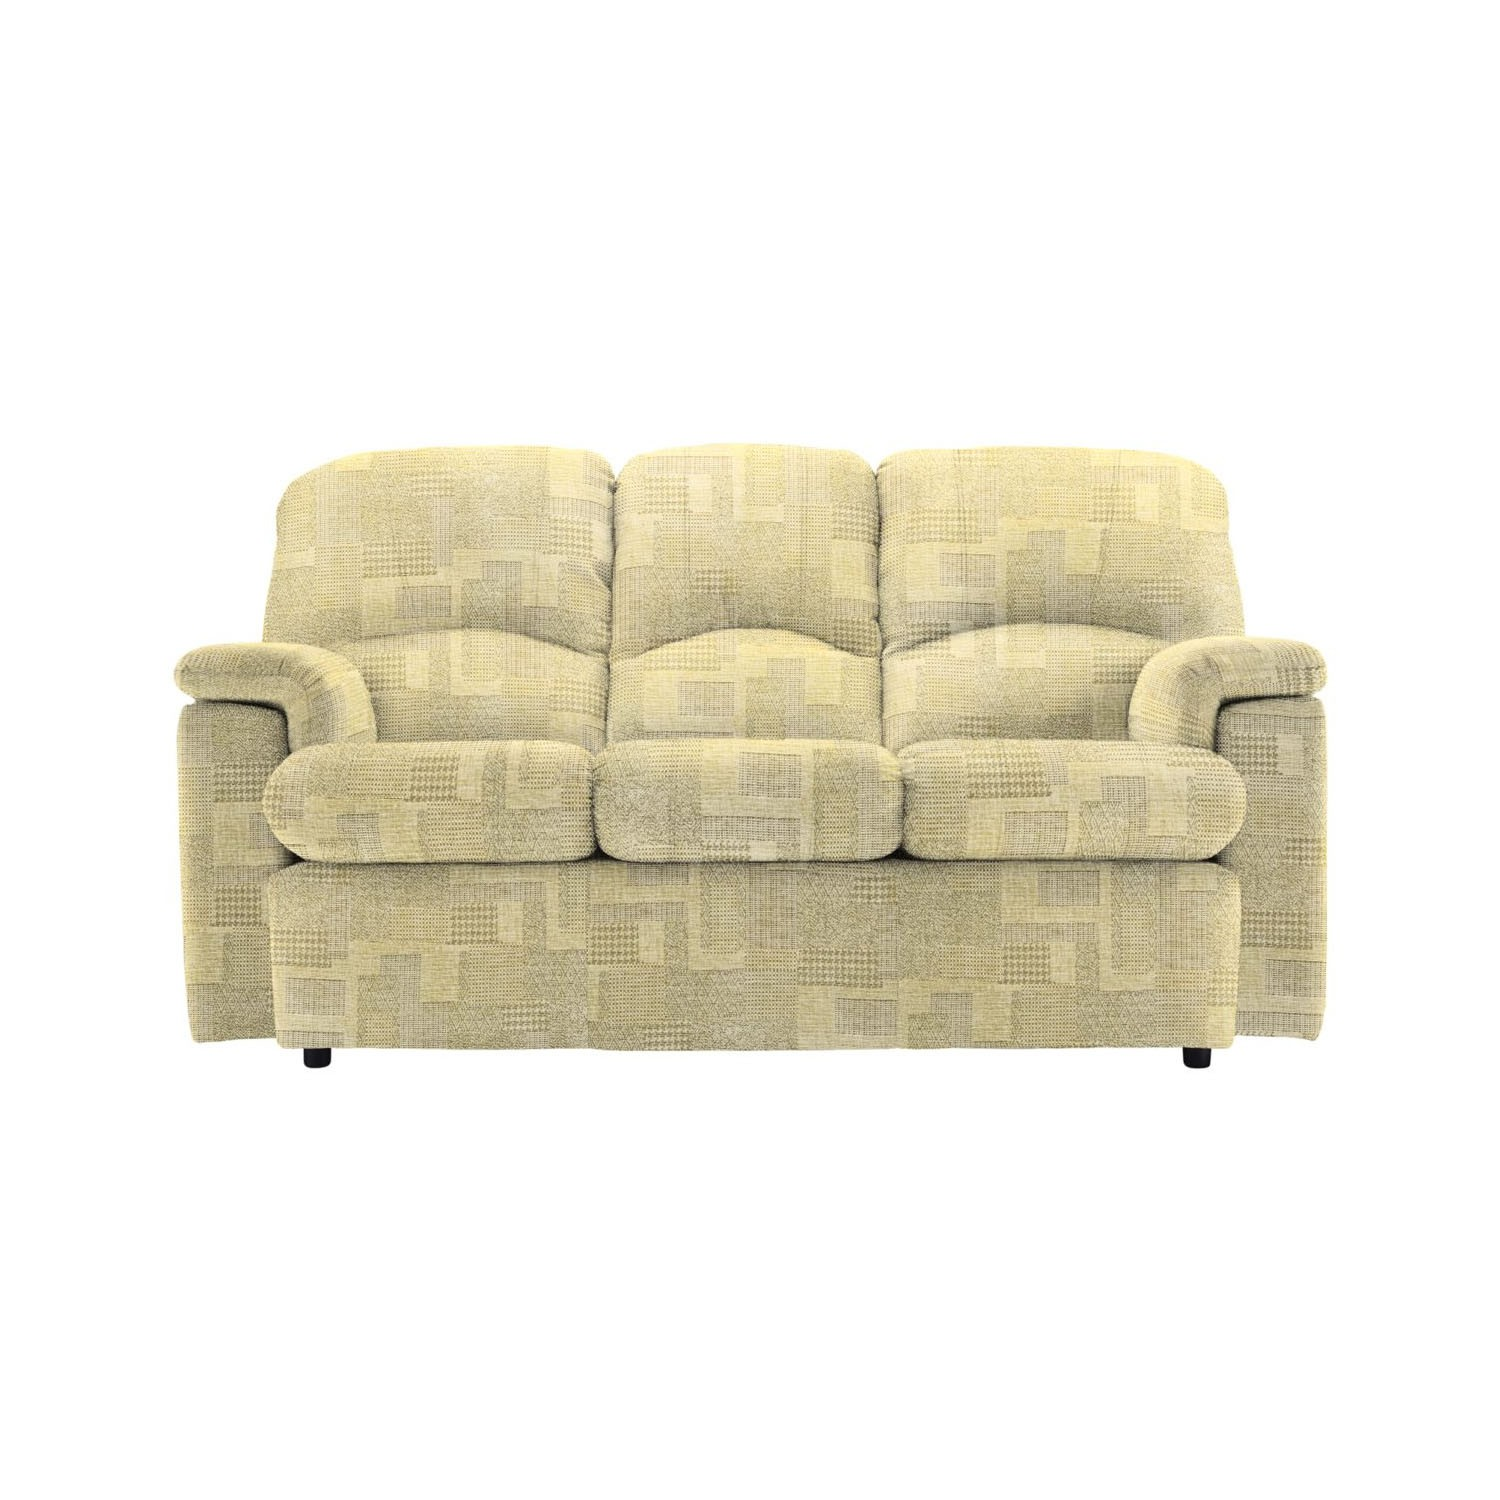 G Plan Chloe 3 Seater Fabric Sofa Small Leekes